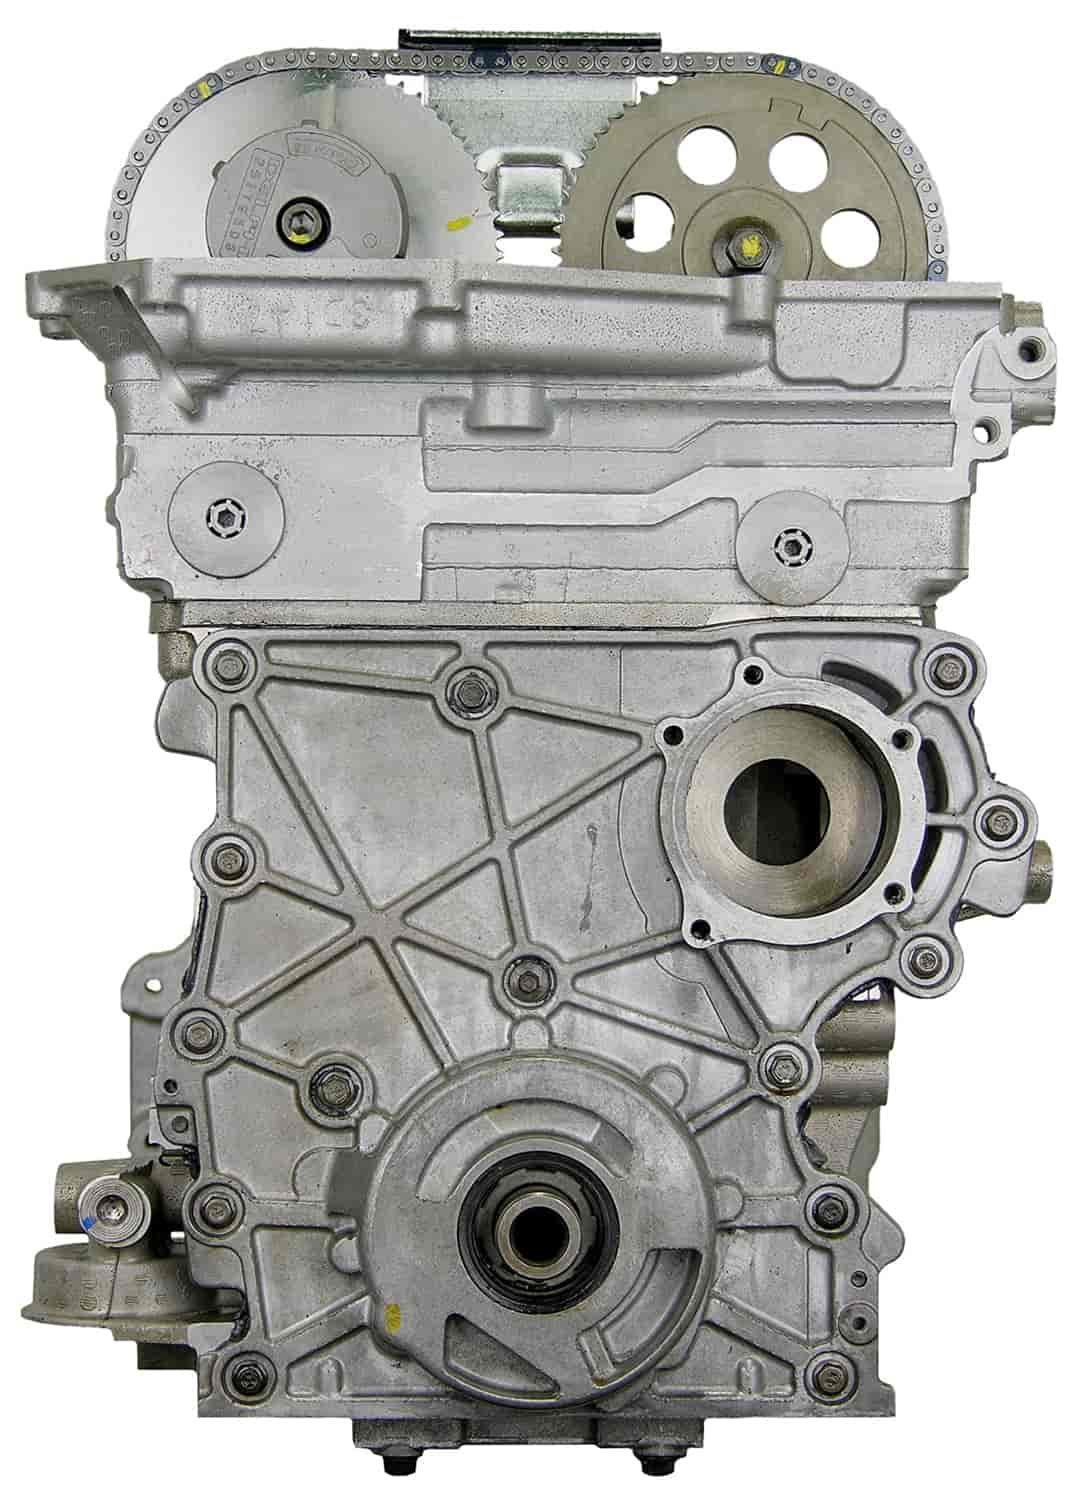 Atk Engines Dctw Remanufactured Crate Engine For 2002